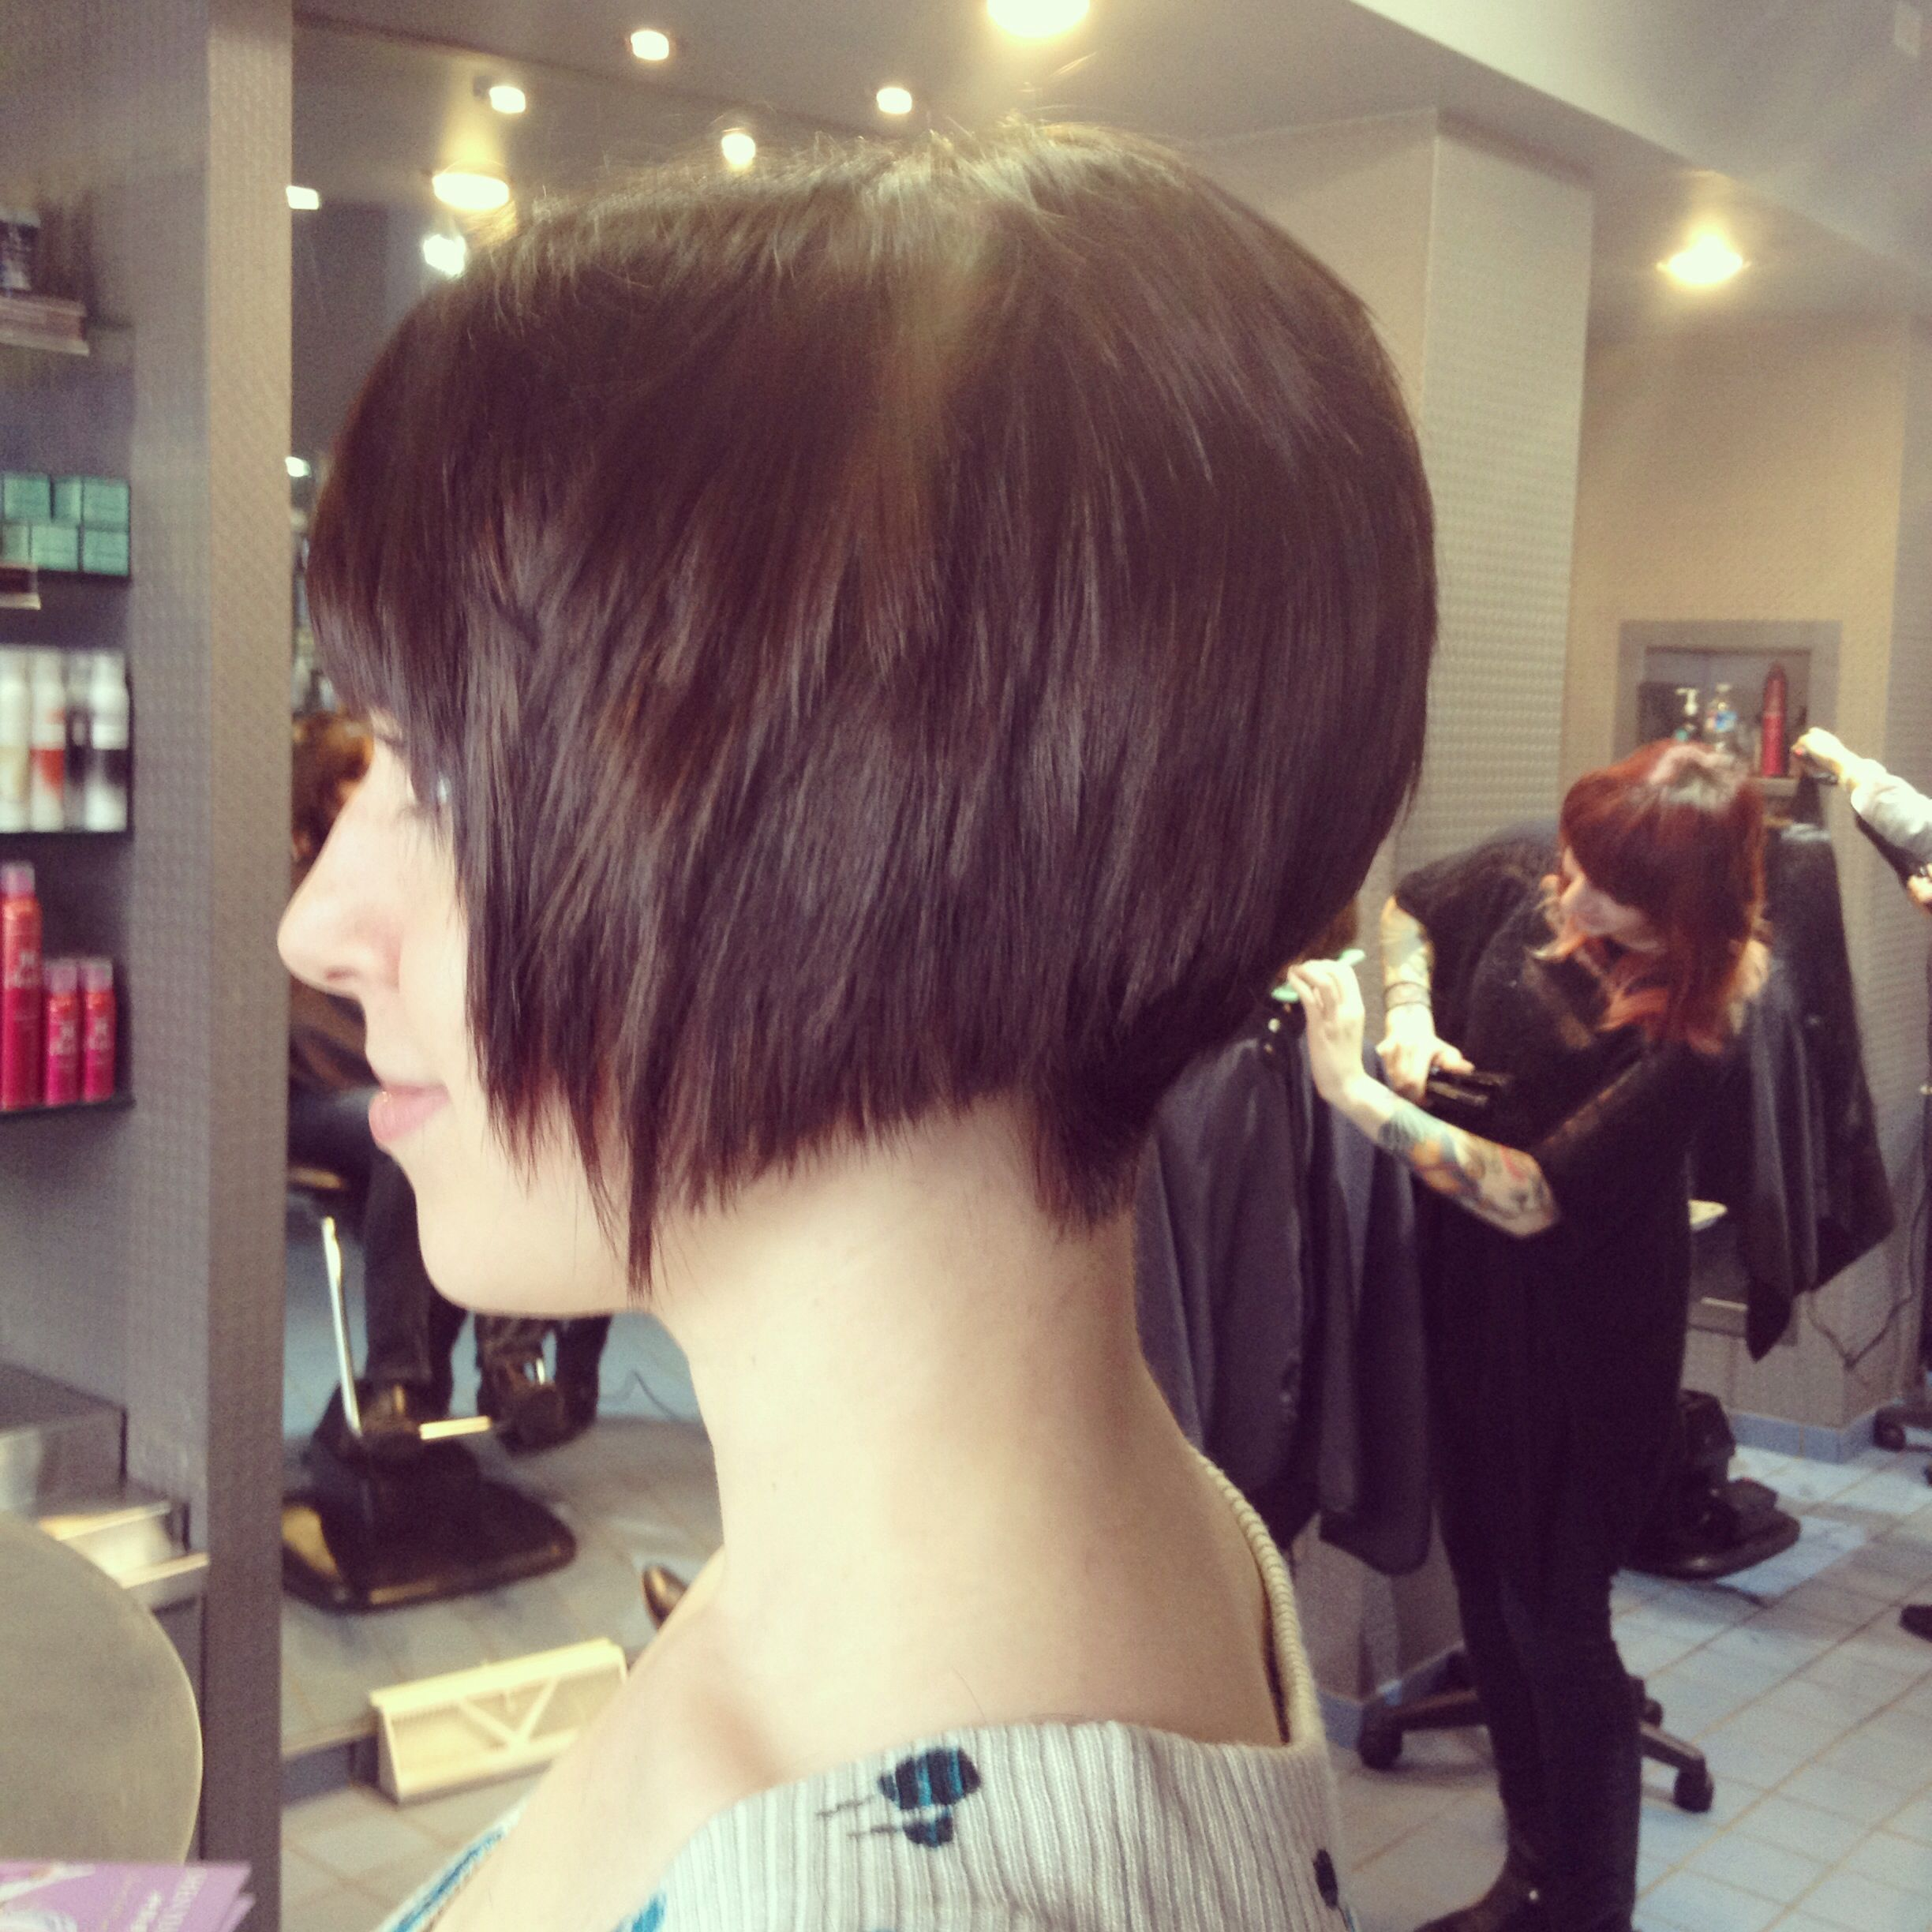 Edgy Stacked Short Haircut Done By Kelsey Schaefer At Richard